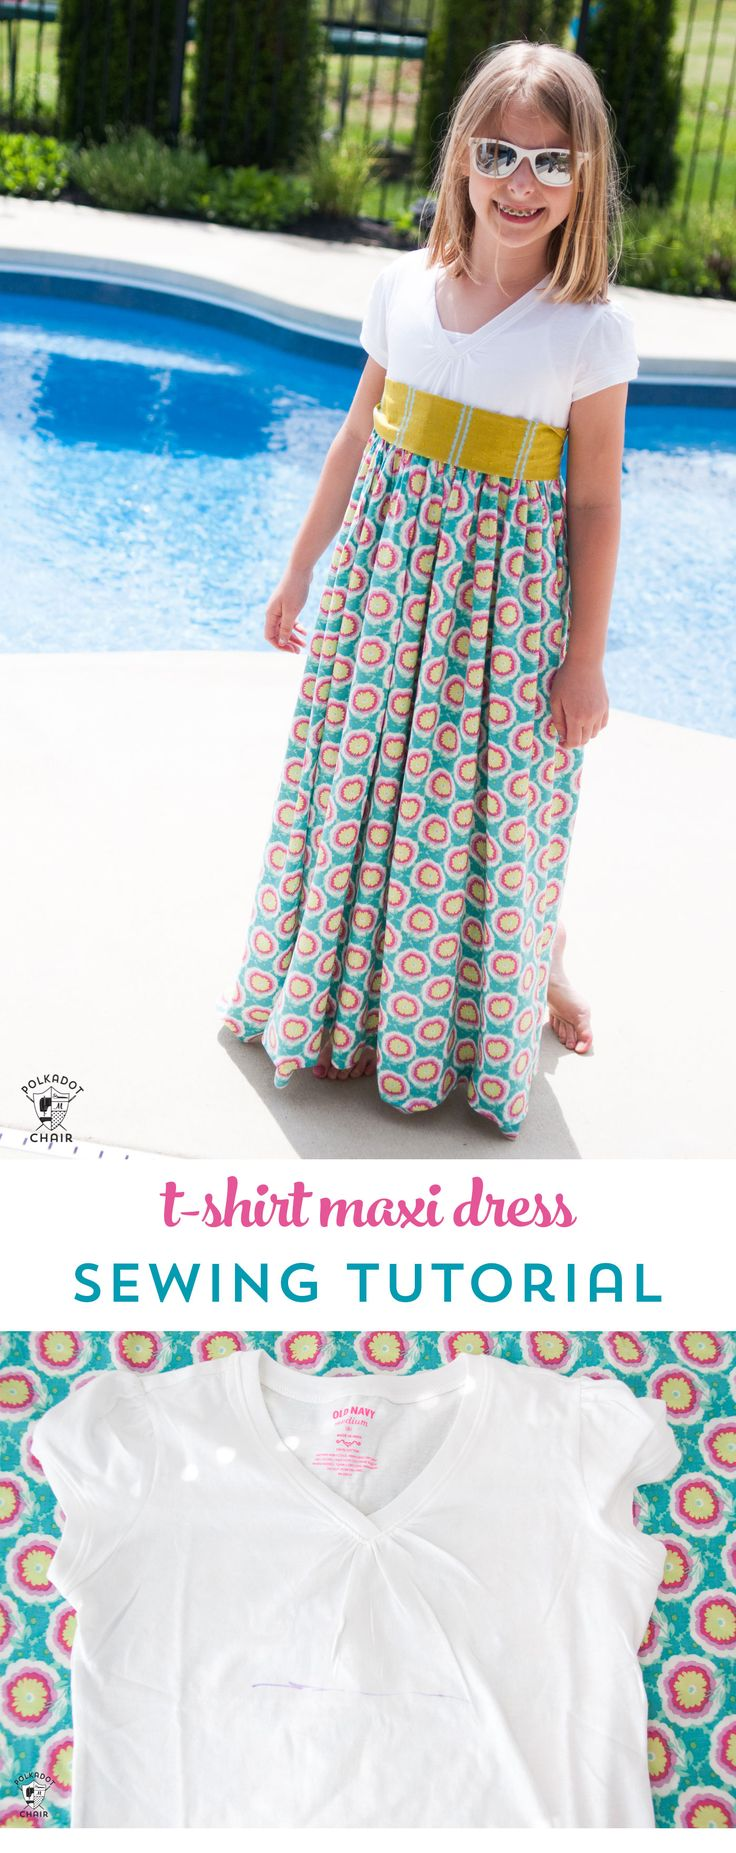 Upcycle a T-shirt into a girls maxi dress with this sewing tutorial. A free patt...